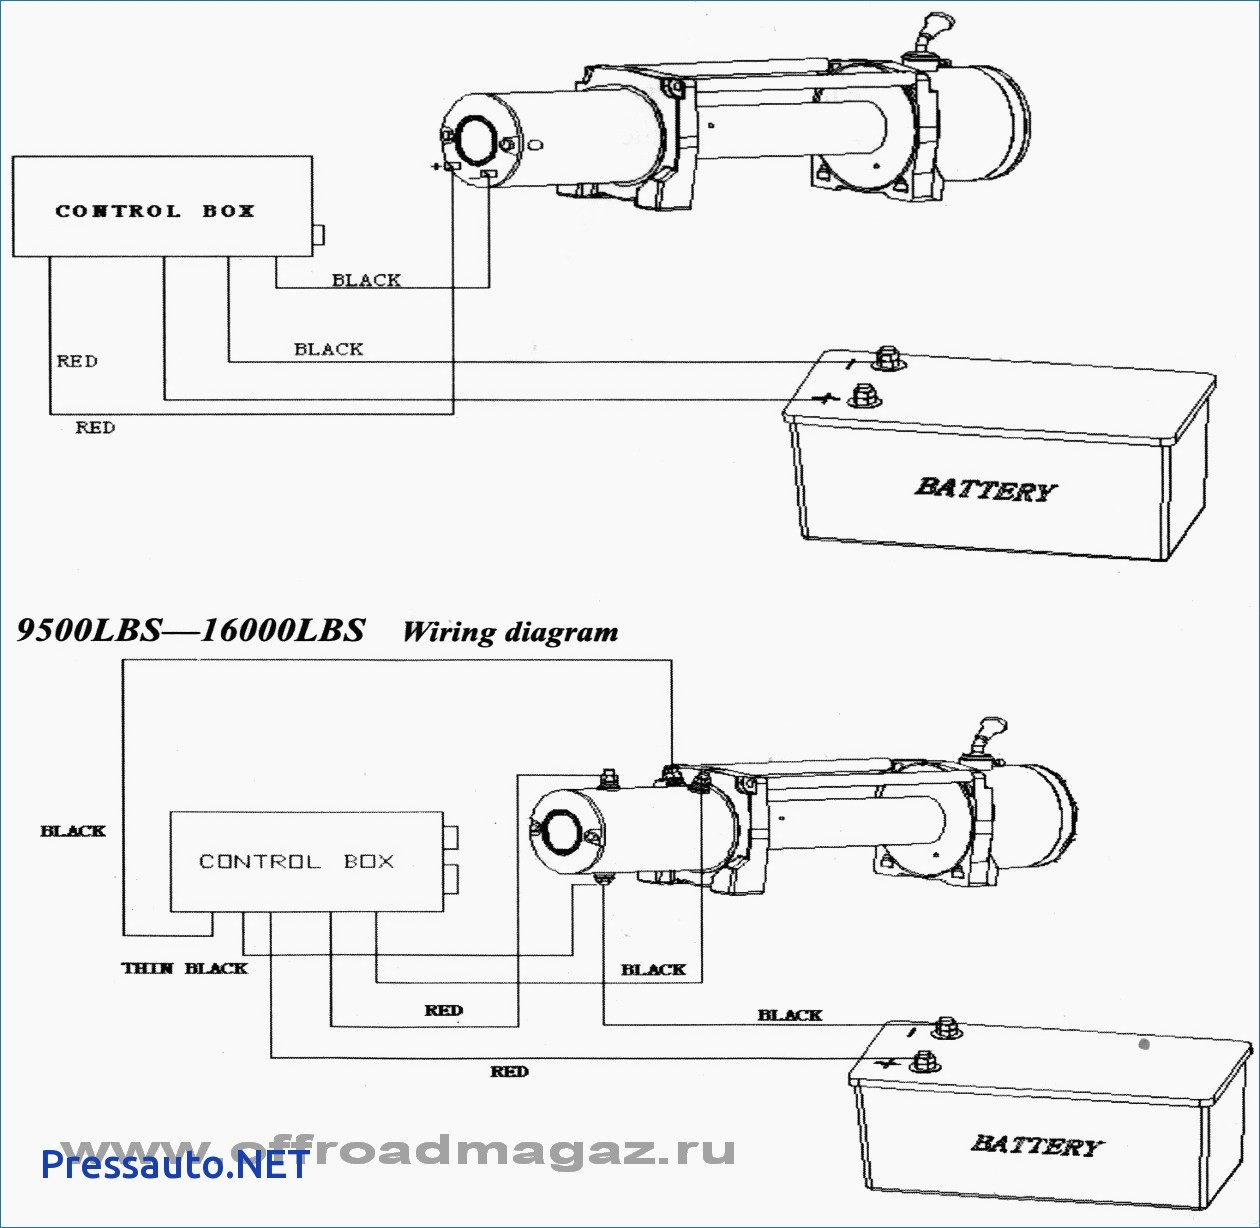 Lt2000 Atv Winch Wiring Diagram Evinrude Outboard And Warn A2000 Inside